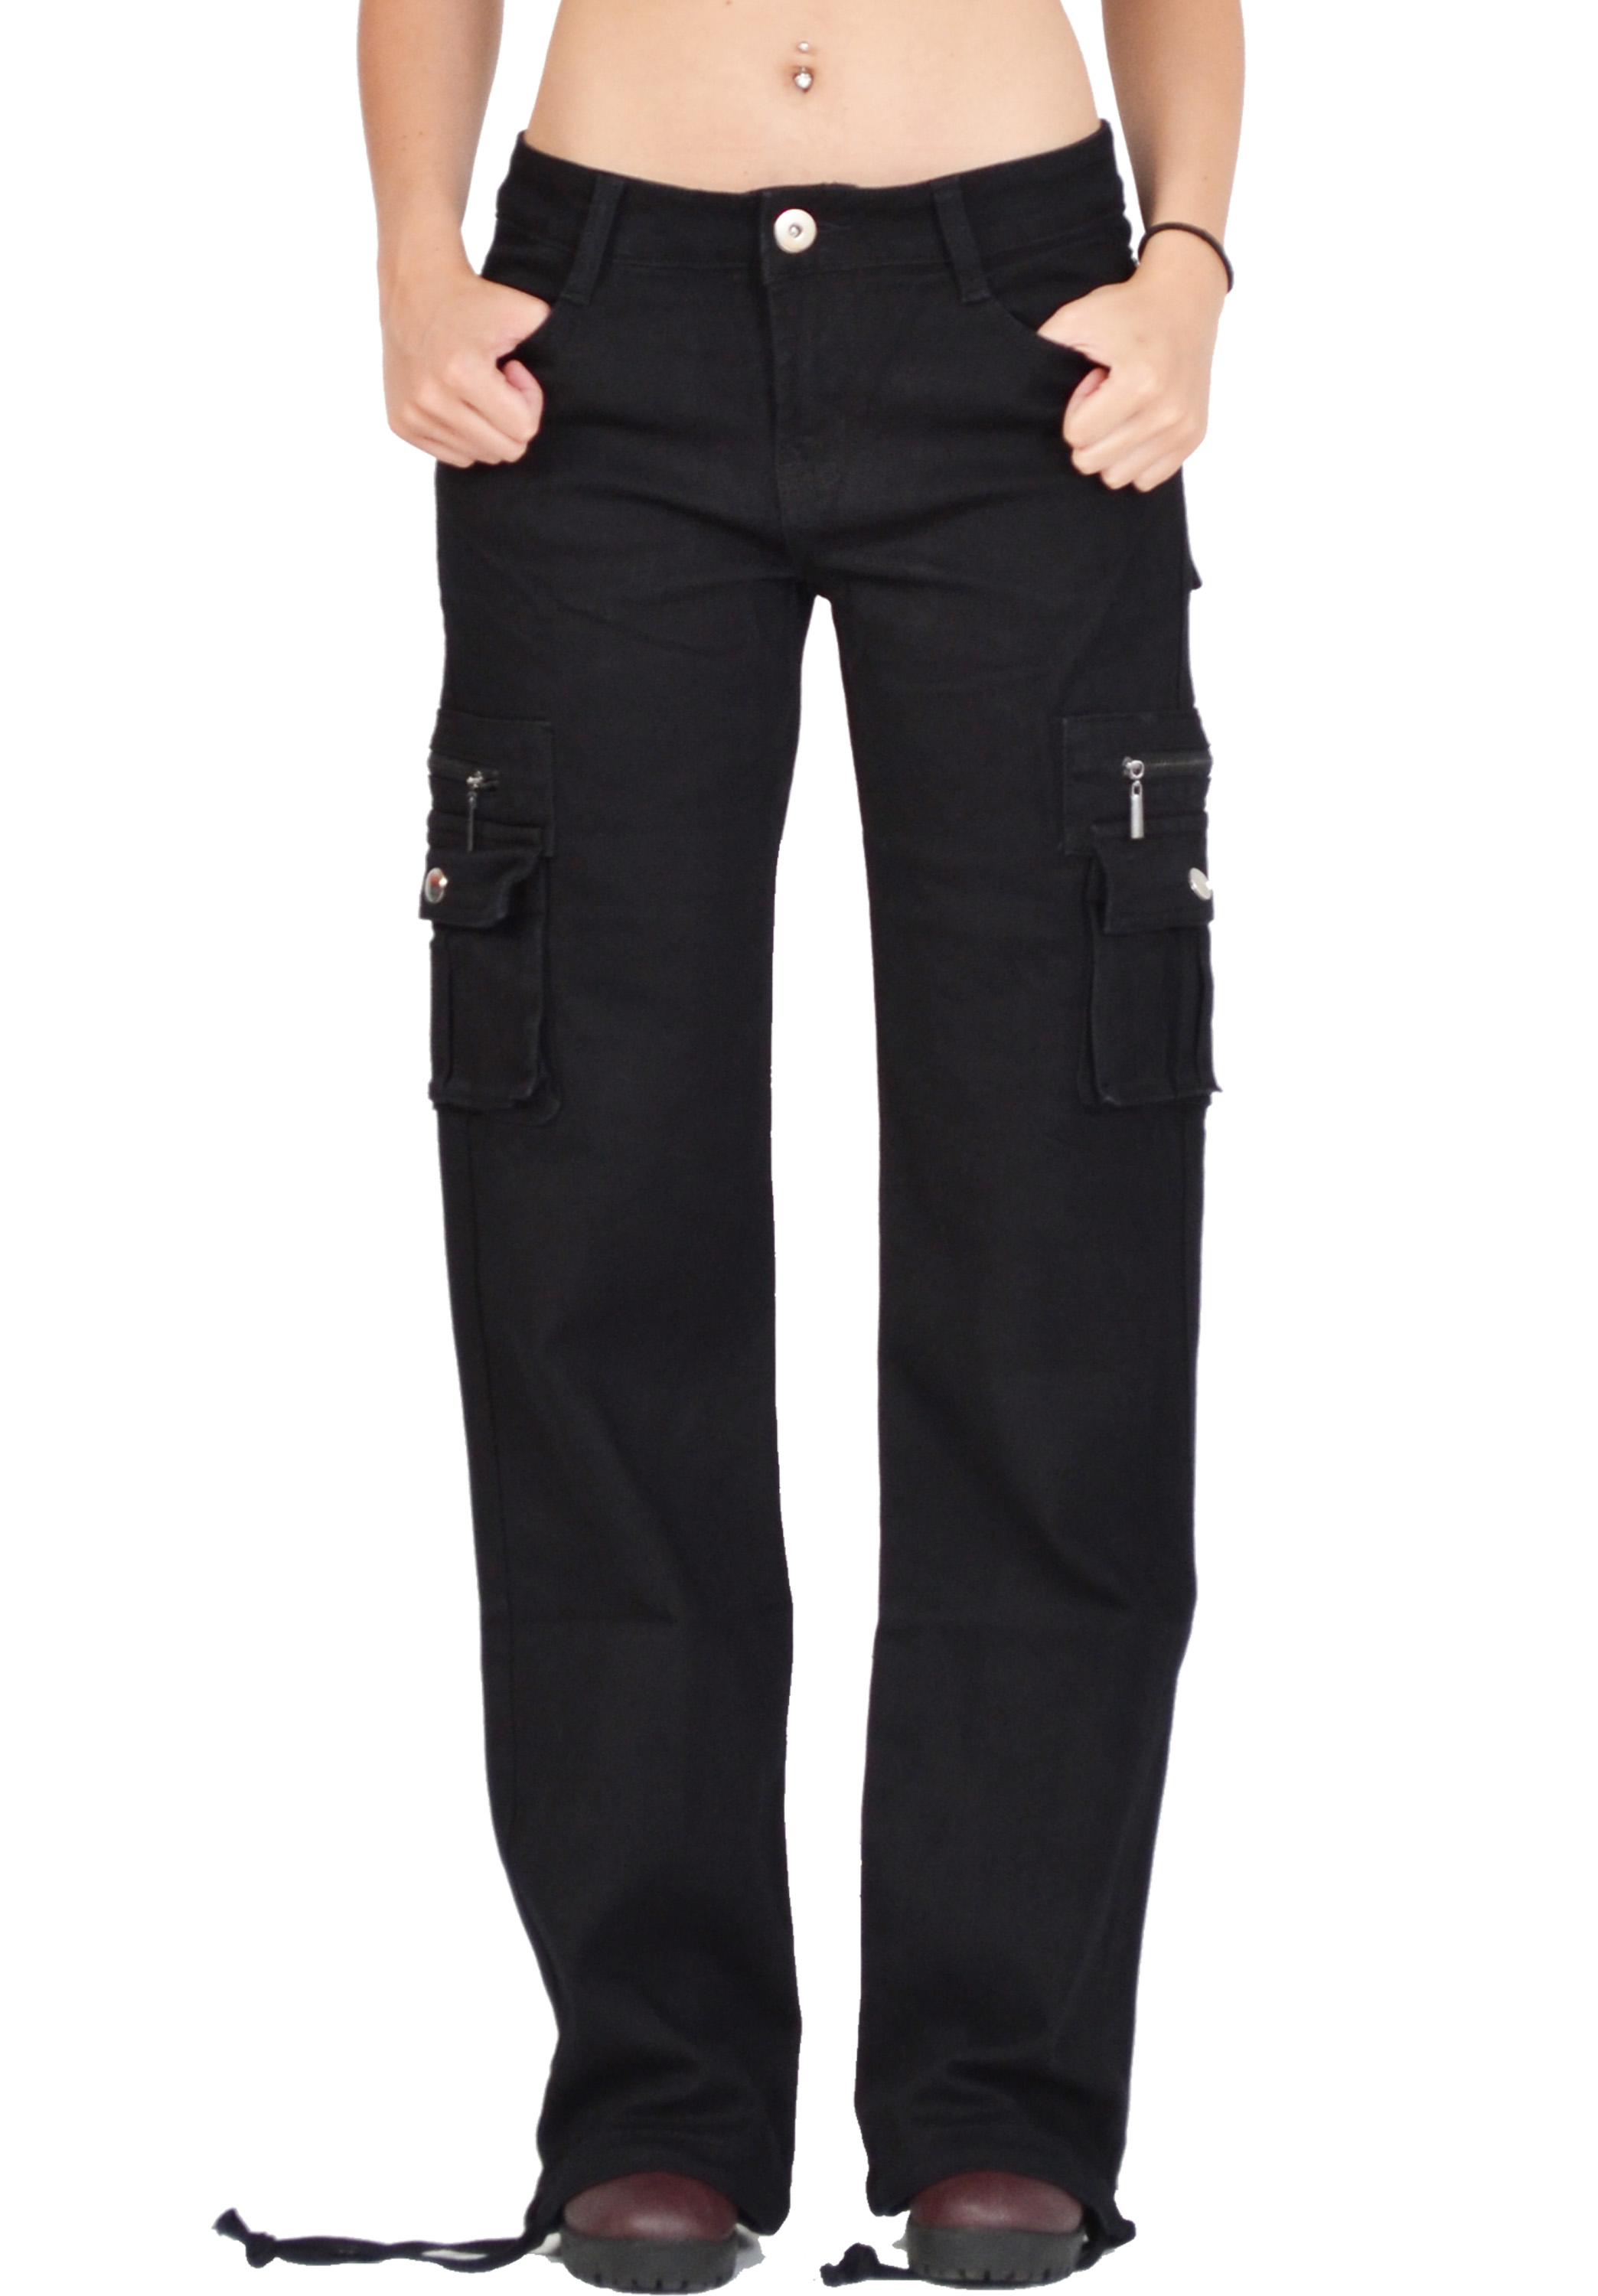 black cargo pants womens photo - 1